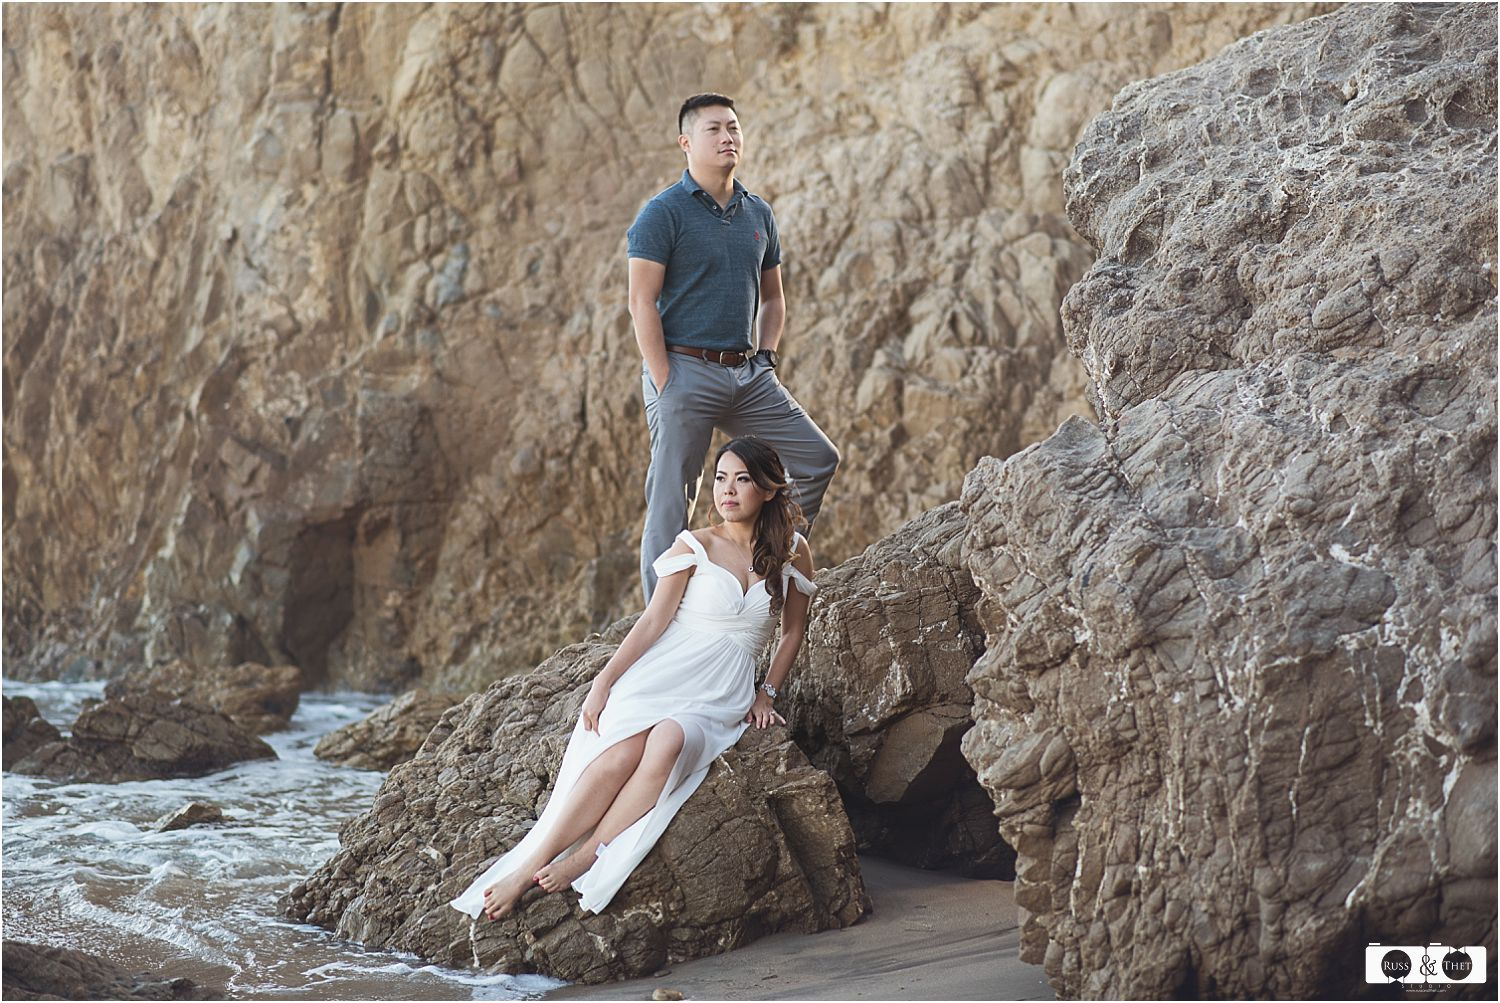 el-matador-malibu-engagement-ideas (2).jpg